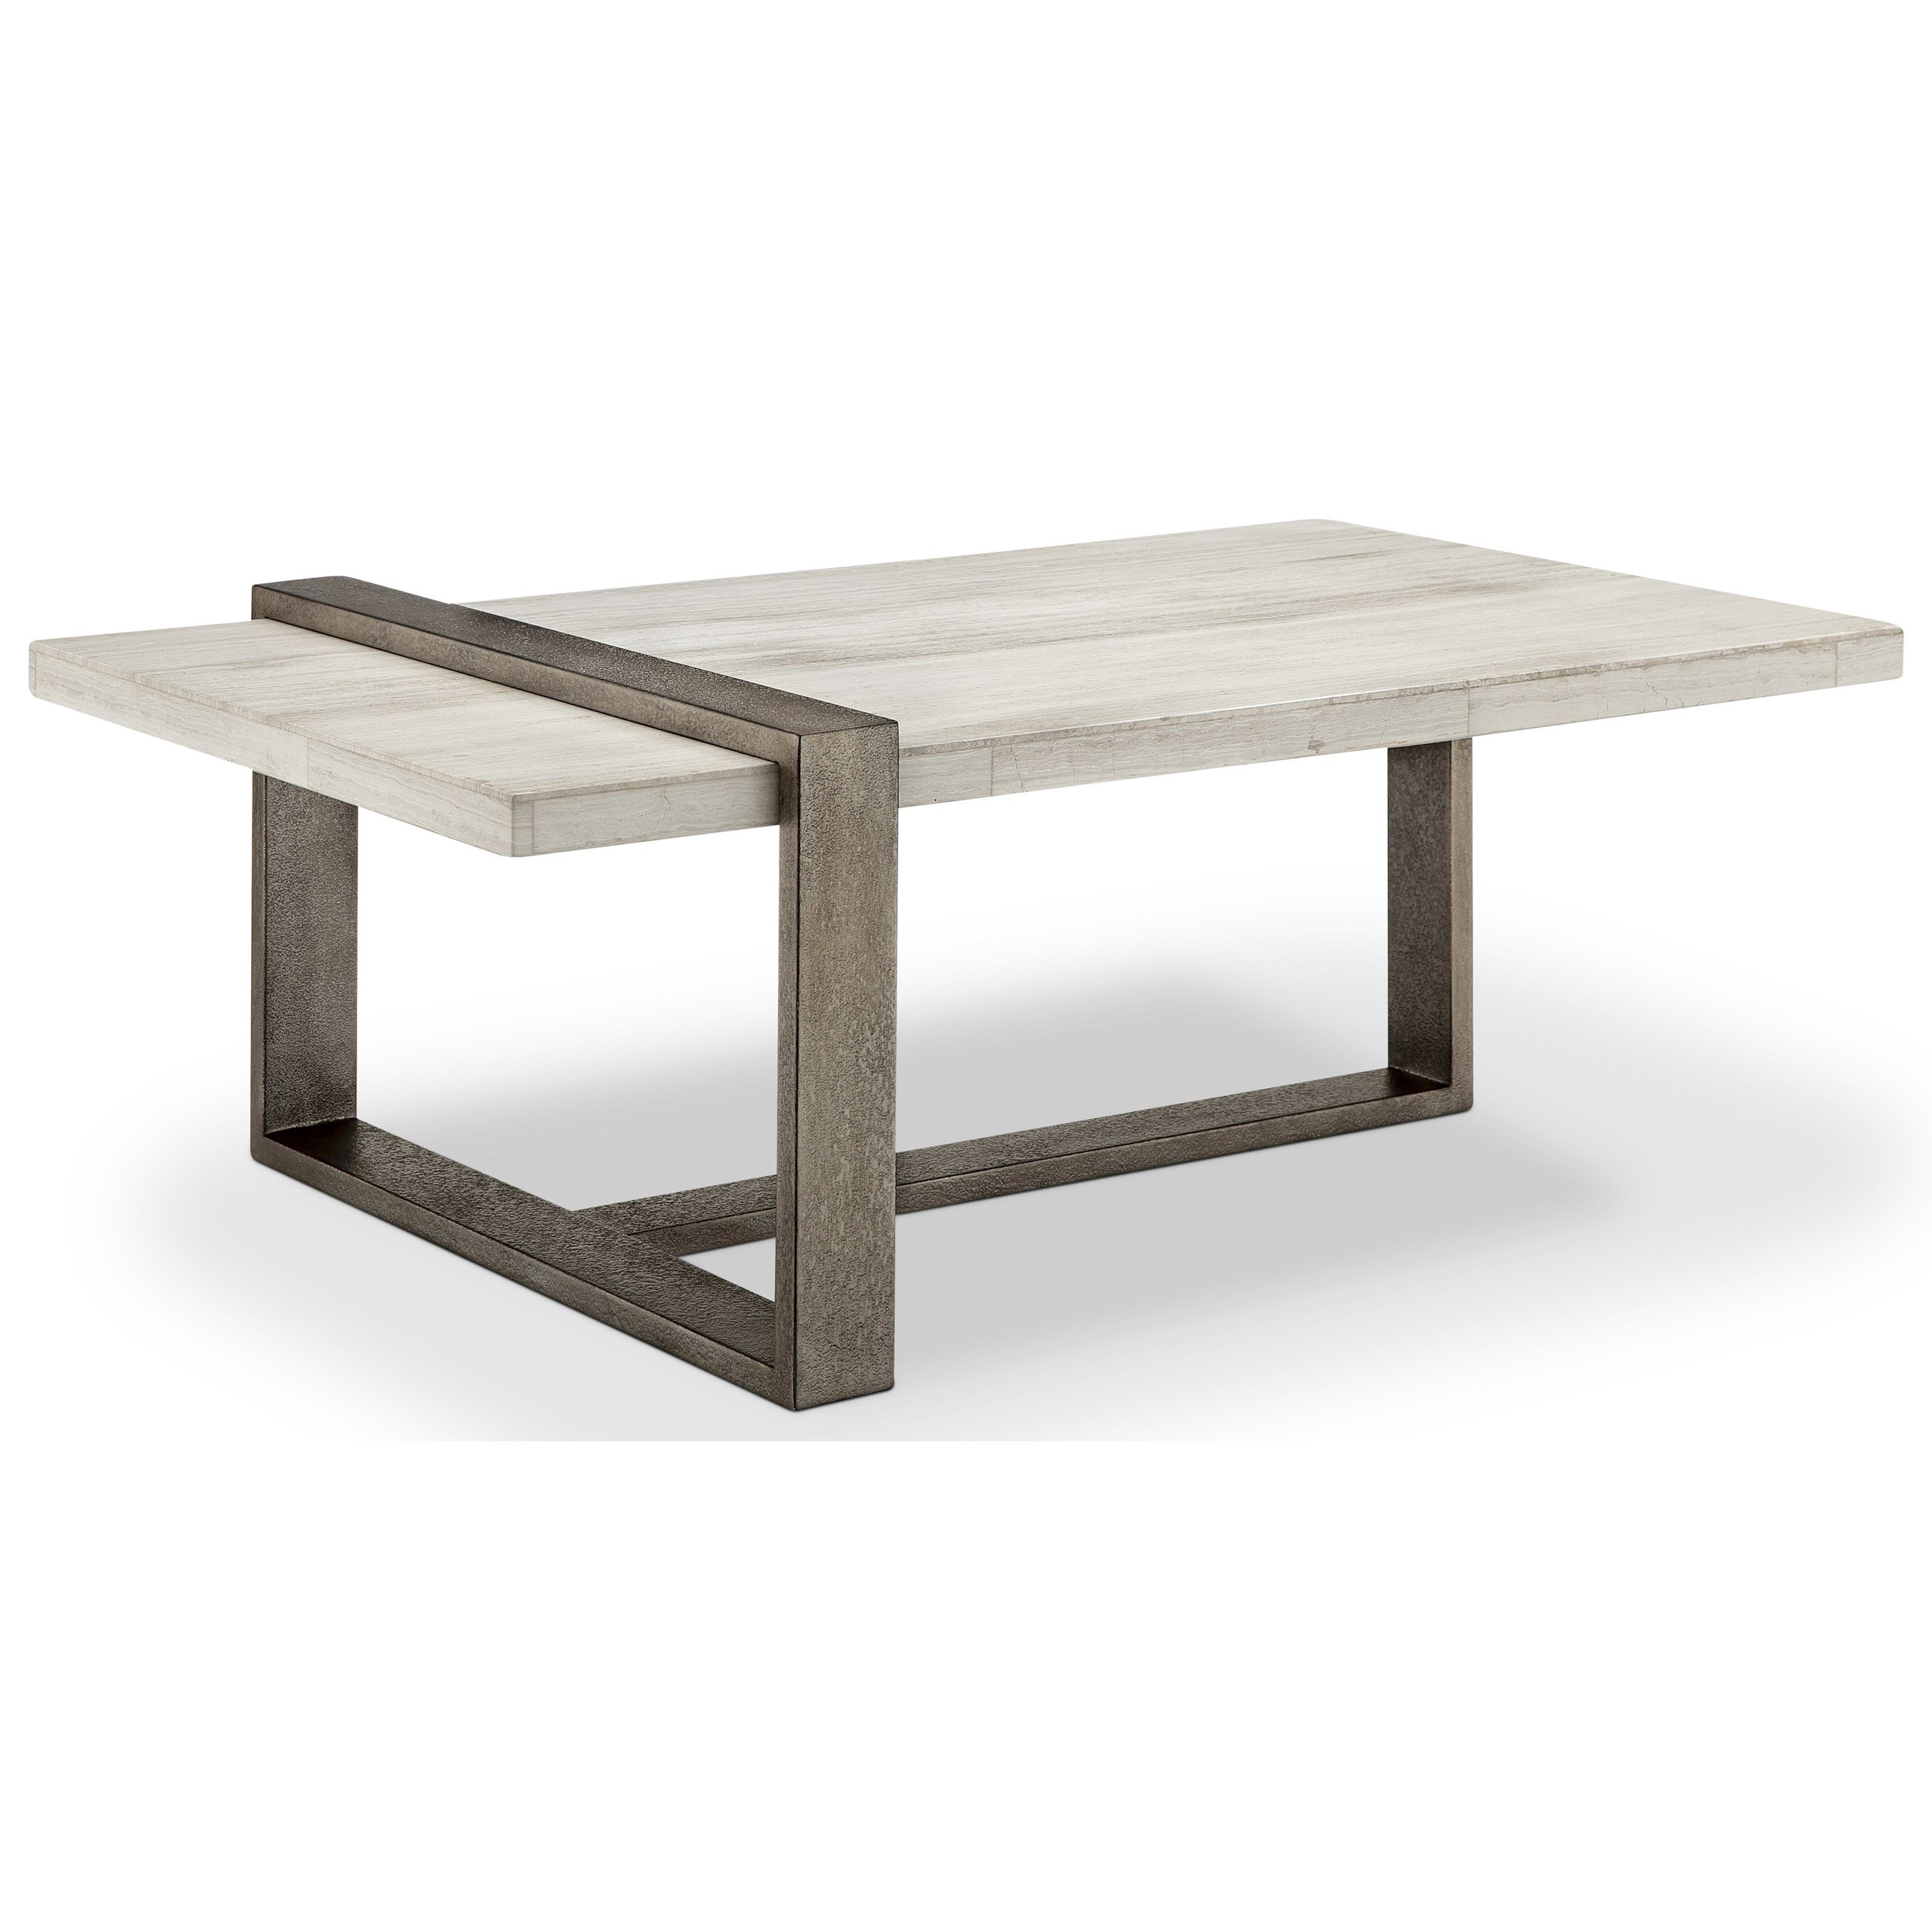 Wiltshire Mh Contemporary Rectangular Cocktail Table With Metal Base By Belfort Select At Belfort Furniture Coffee Table Modern Coffee Tables Contemporary Coffee Table [ 3200 x 3200 Pixel ]